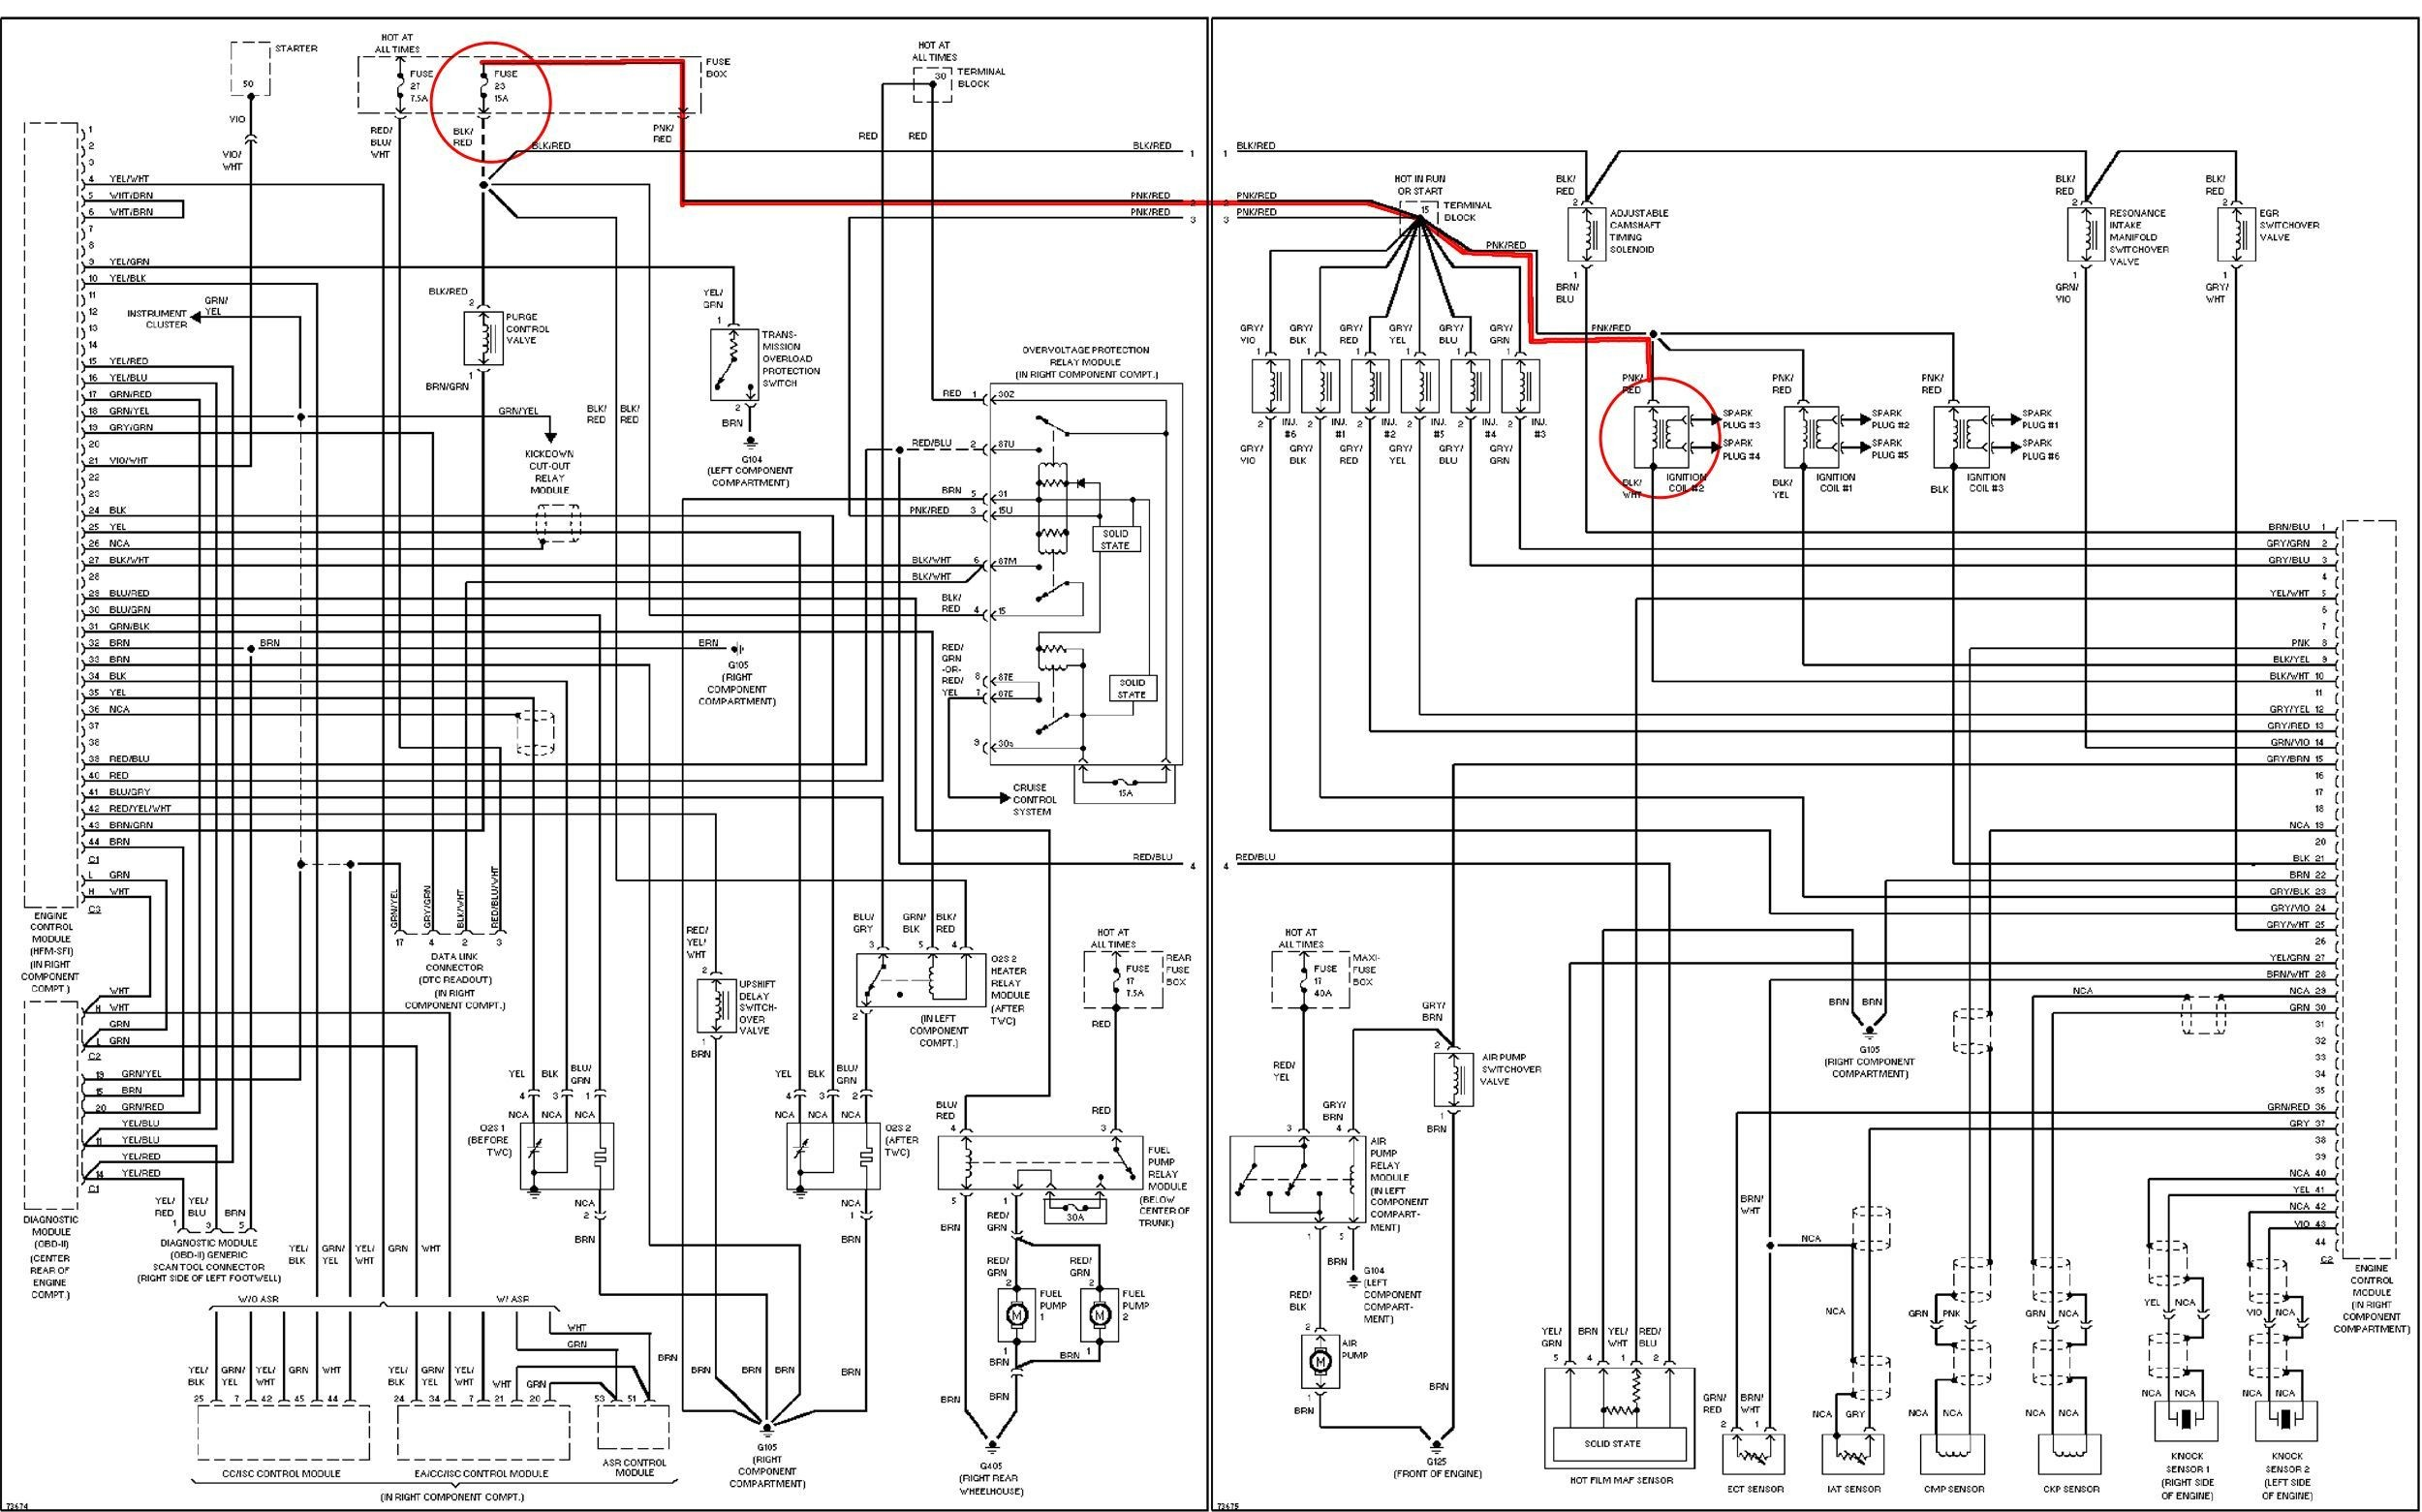 Mercedes Benz Engine Diagram Mercedes Benz Engine Schematics Trusted Wiring Diagrams • Of Mercedes Benz Engine Diagram Wiring Diagram Auto Alarm Best Best Mercedes Benz Wiring Diagrams